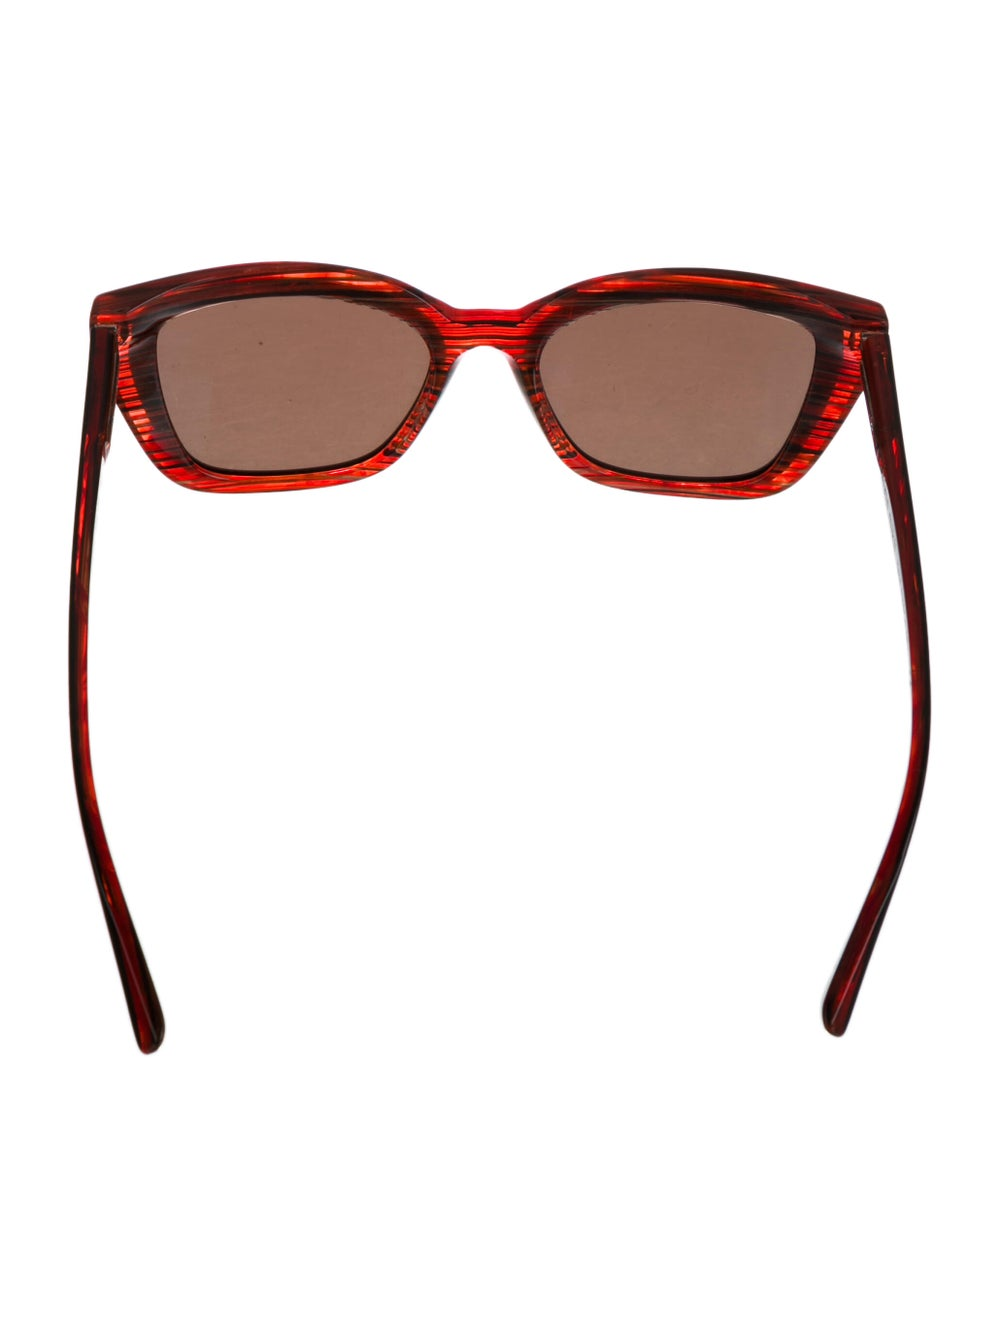 Alain Mikli Square Tinted Sunglasses Red - image 3